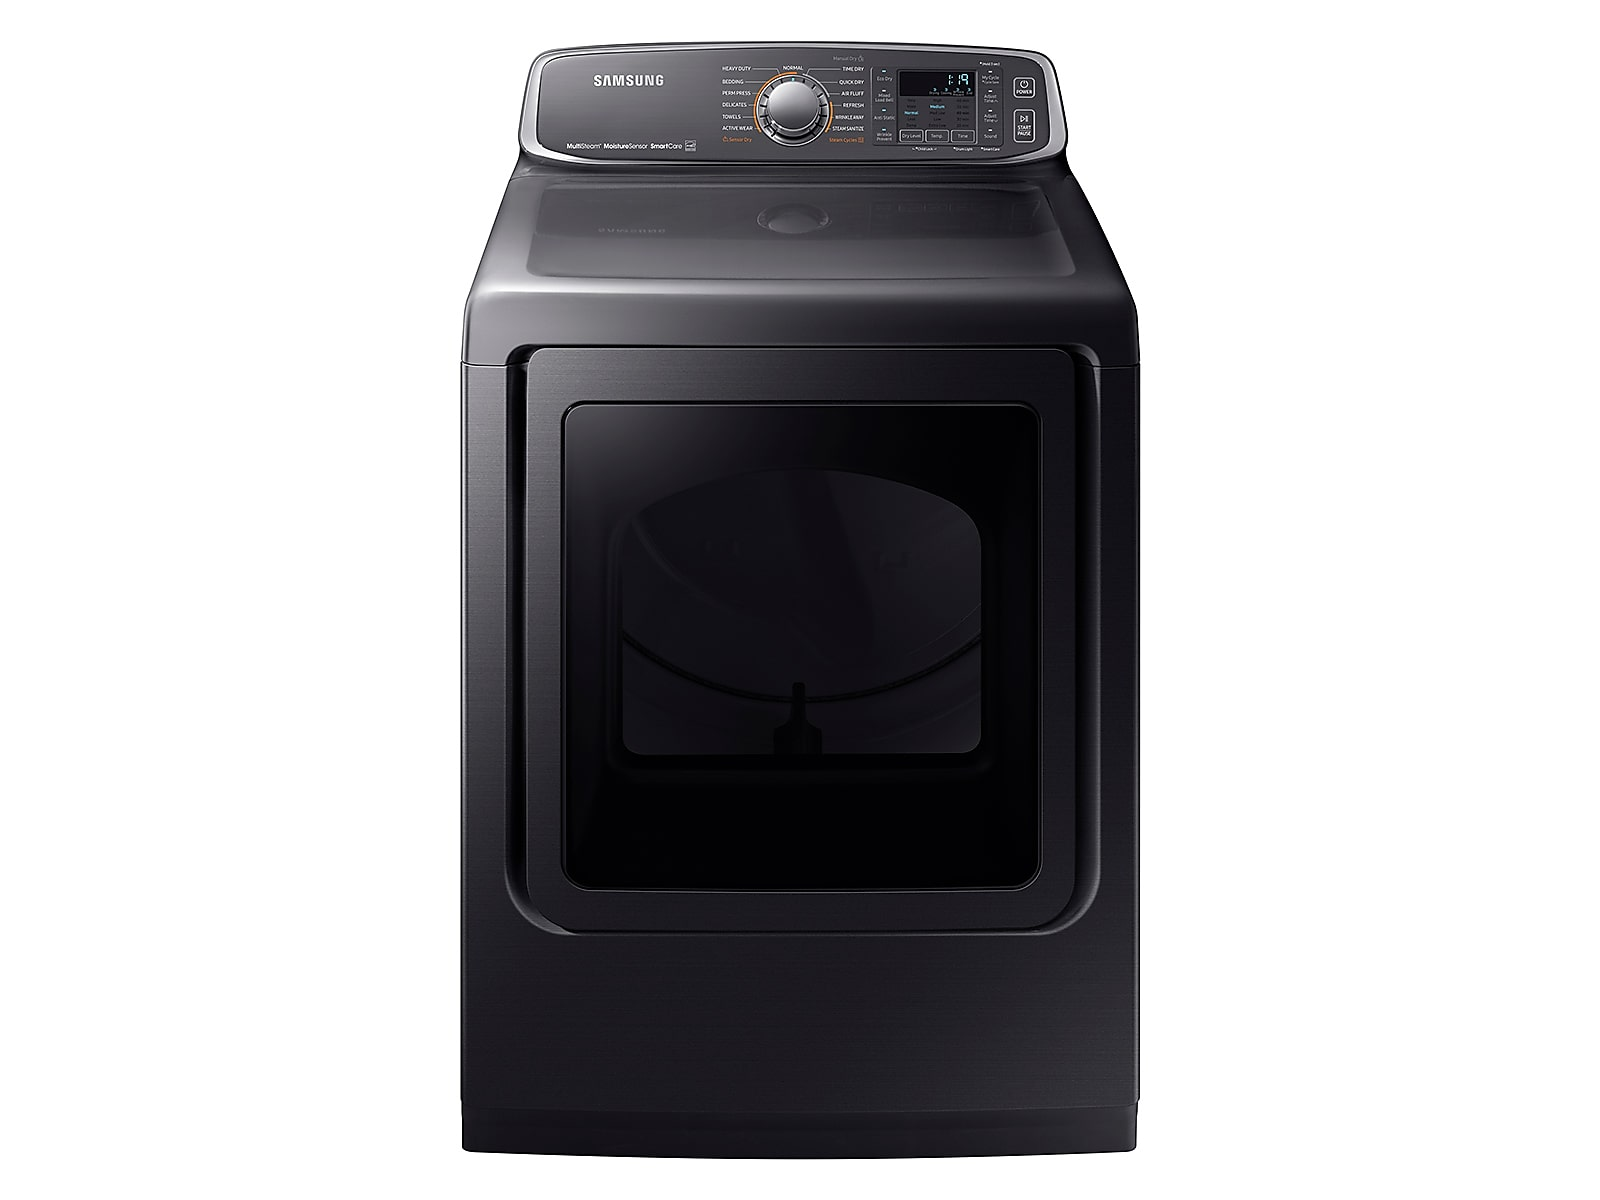 Samsung coupon: Samsung 7.4 cu. ft. Gas Dryer in Black Stainless Steel(DVG52M7750V/A3)